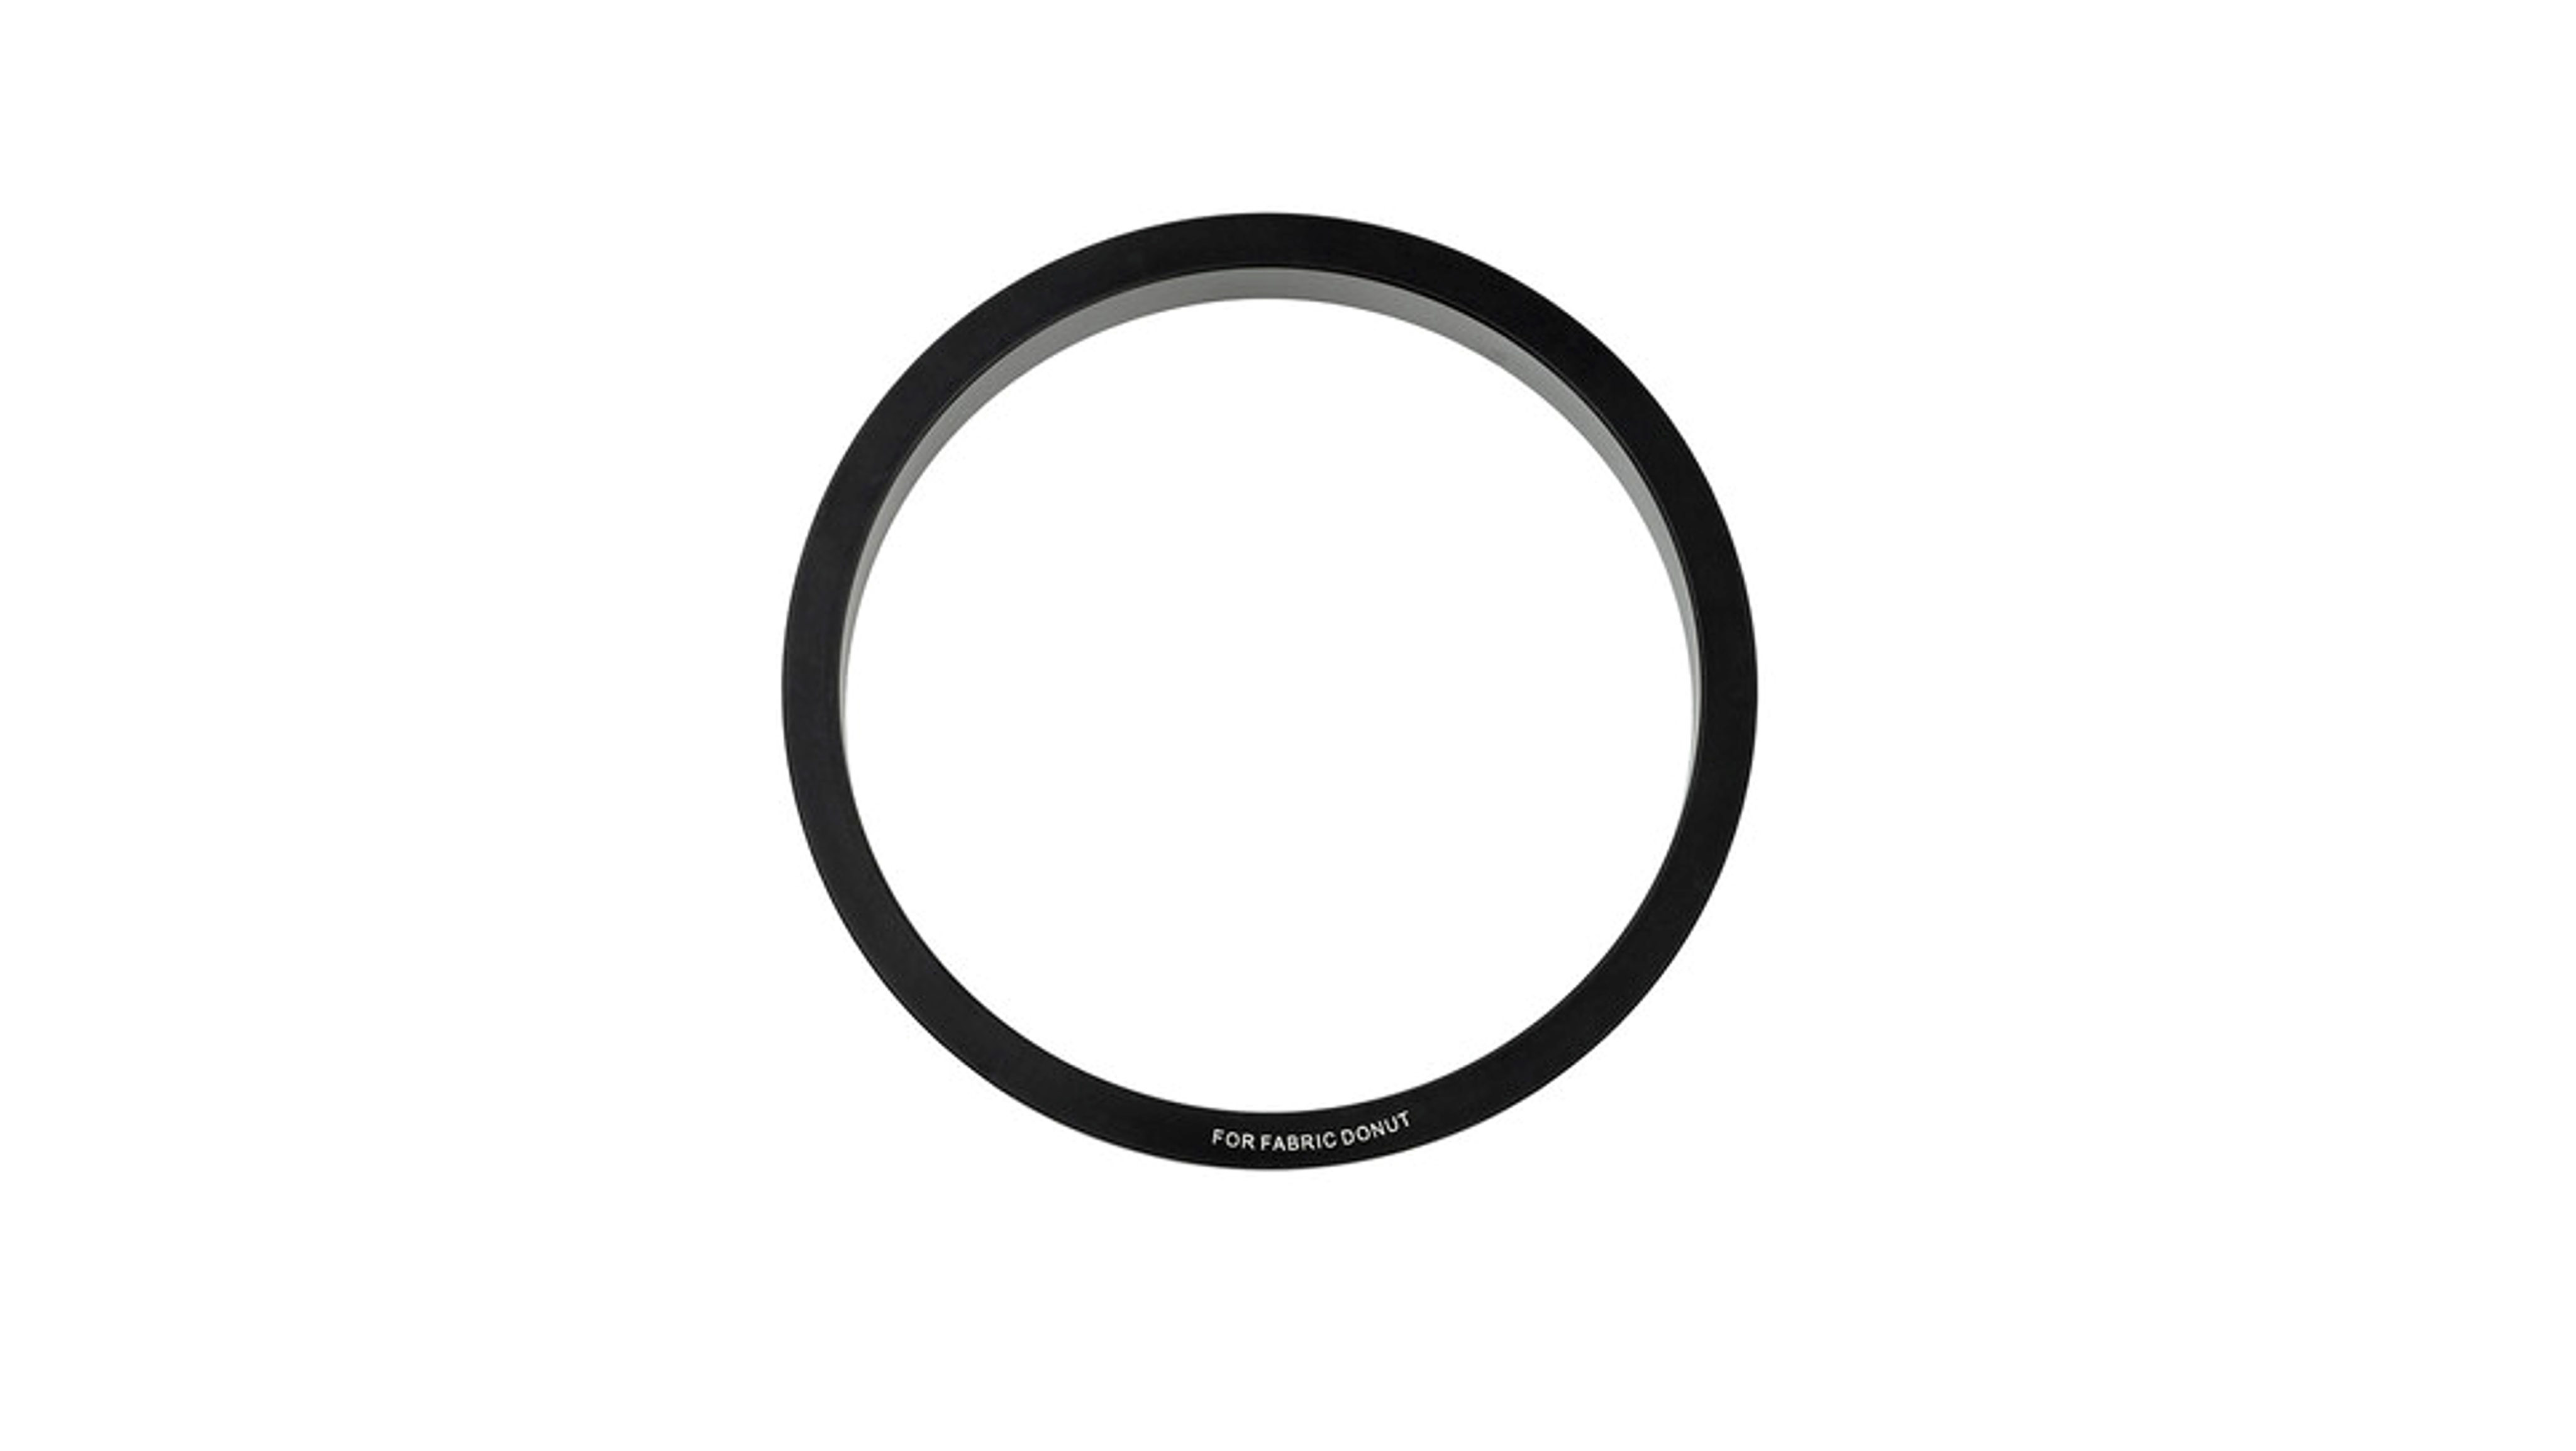 Donut Ring Part Only for replacement on MB-T03 and MB-T05